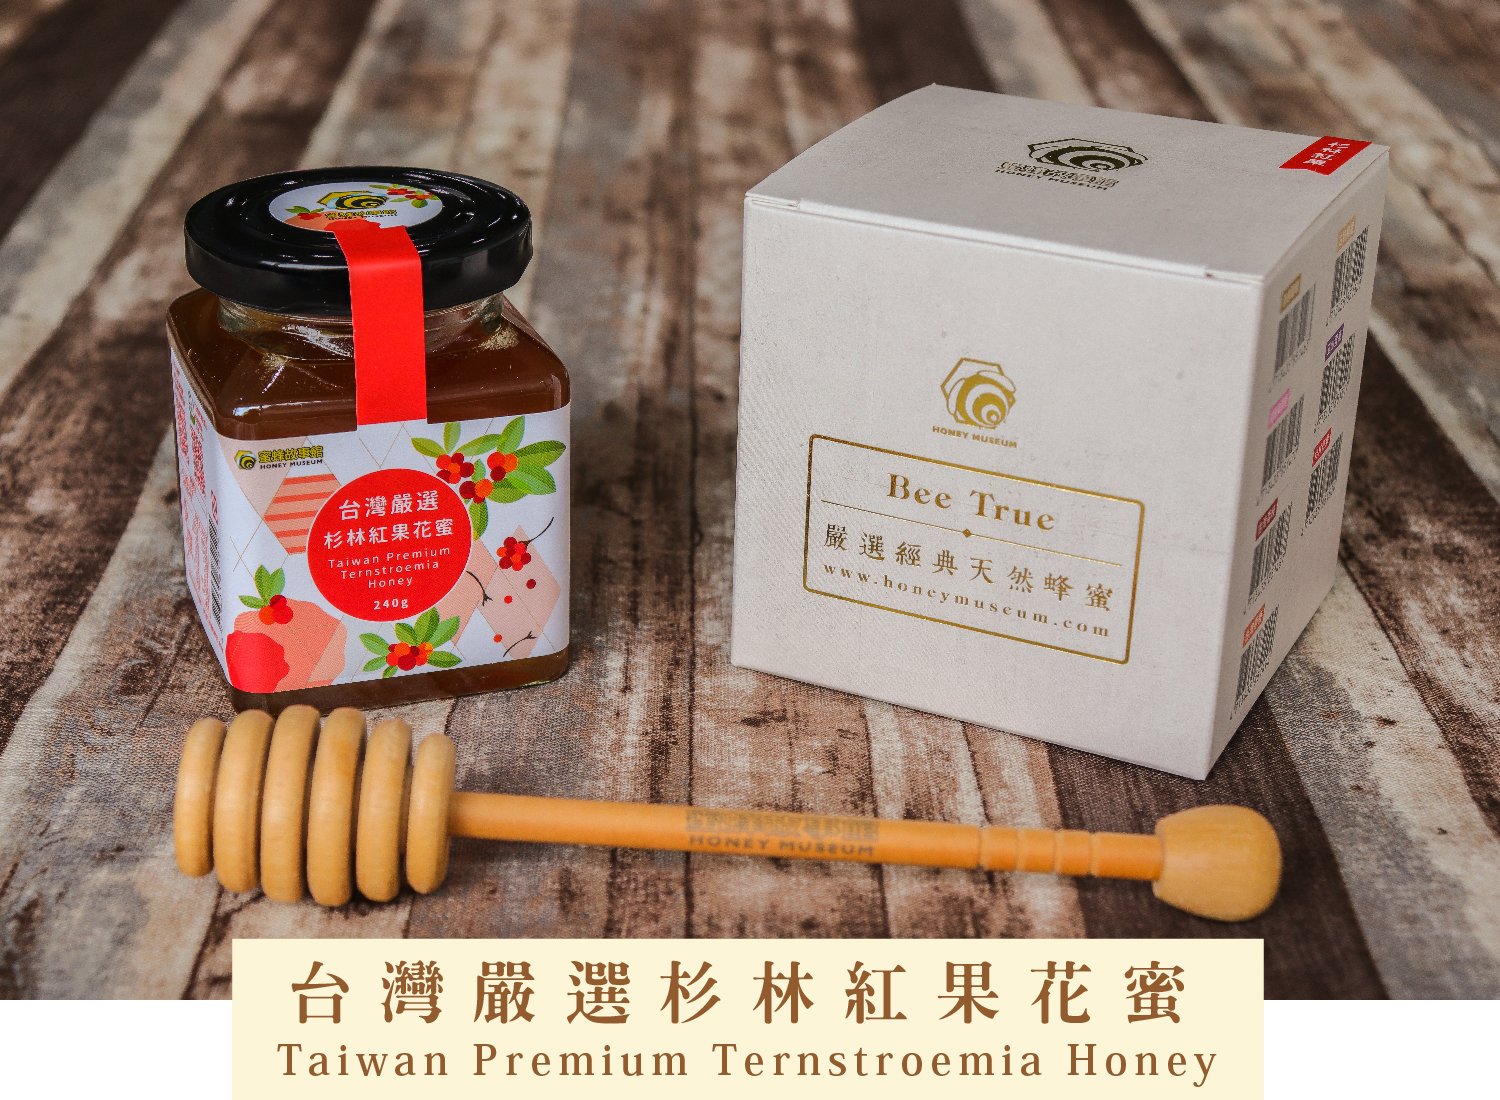 古坑窖藏柳橙花蜜Taiwan Orange Blossom Honey